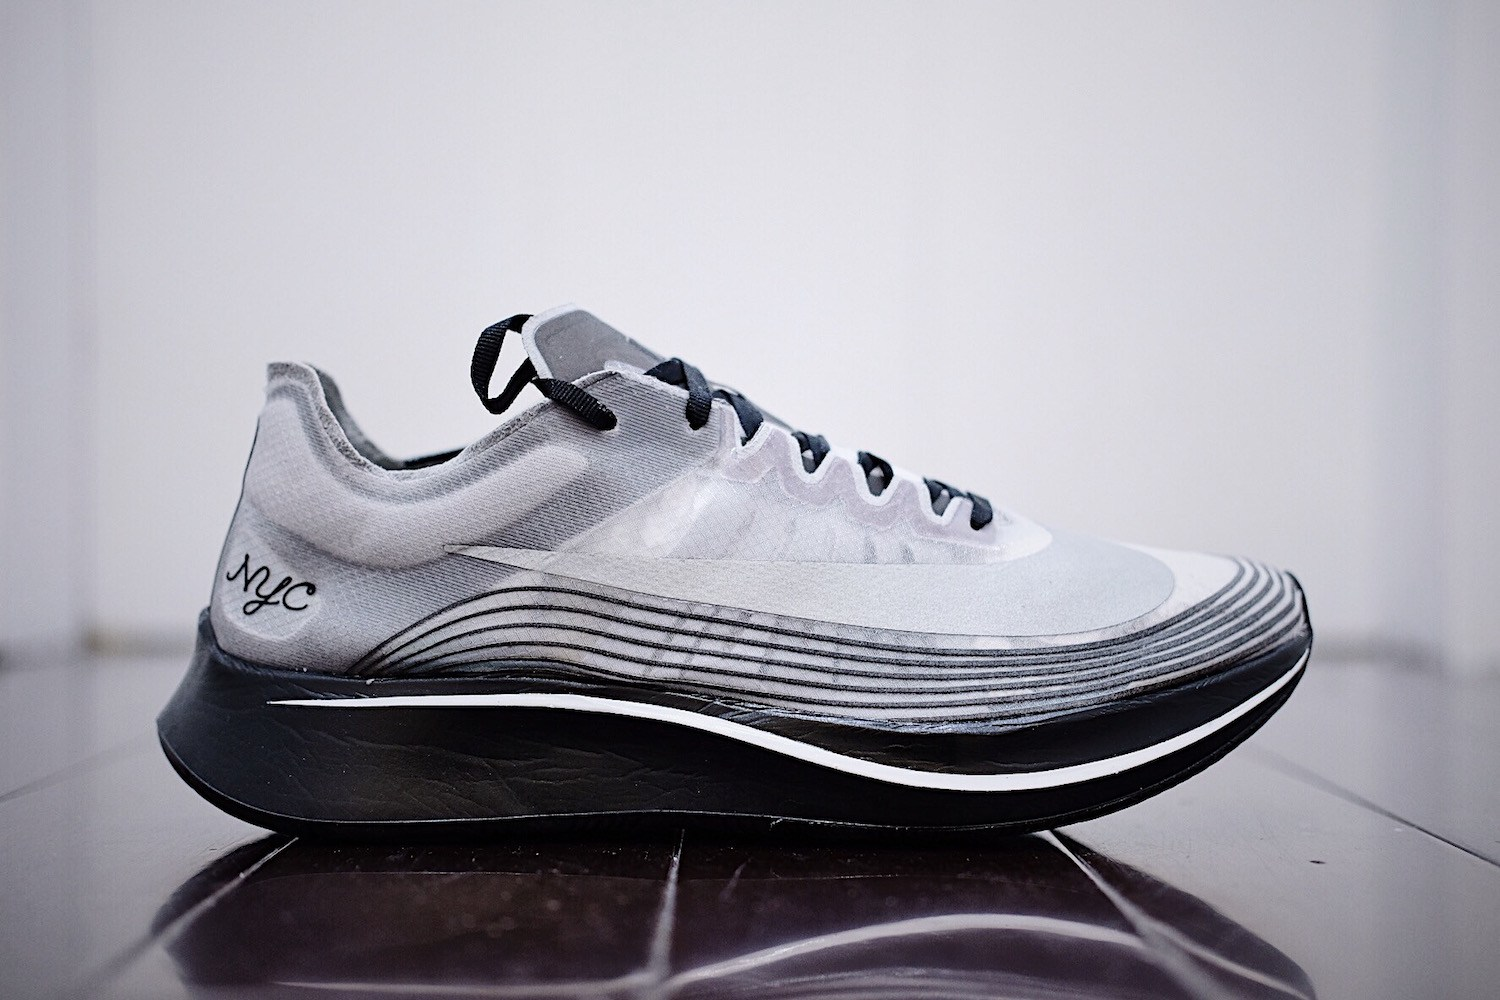 nikelab-zoom-fly-sp-nyc-first-look-1